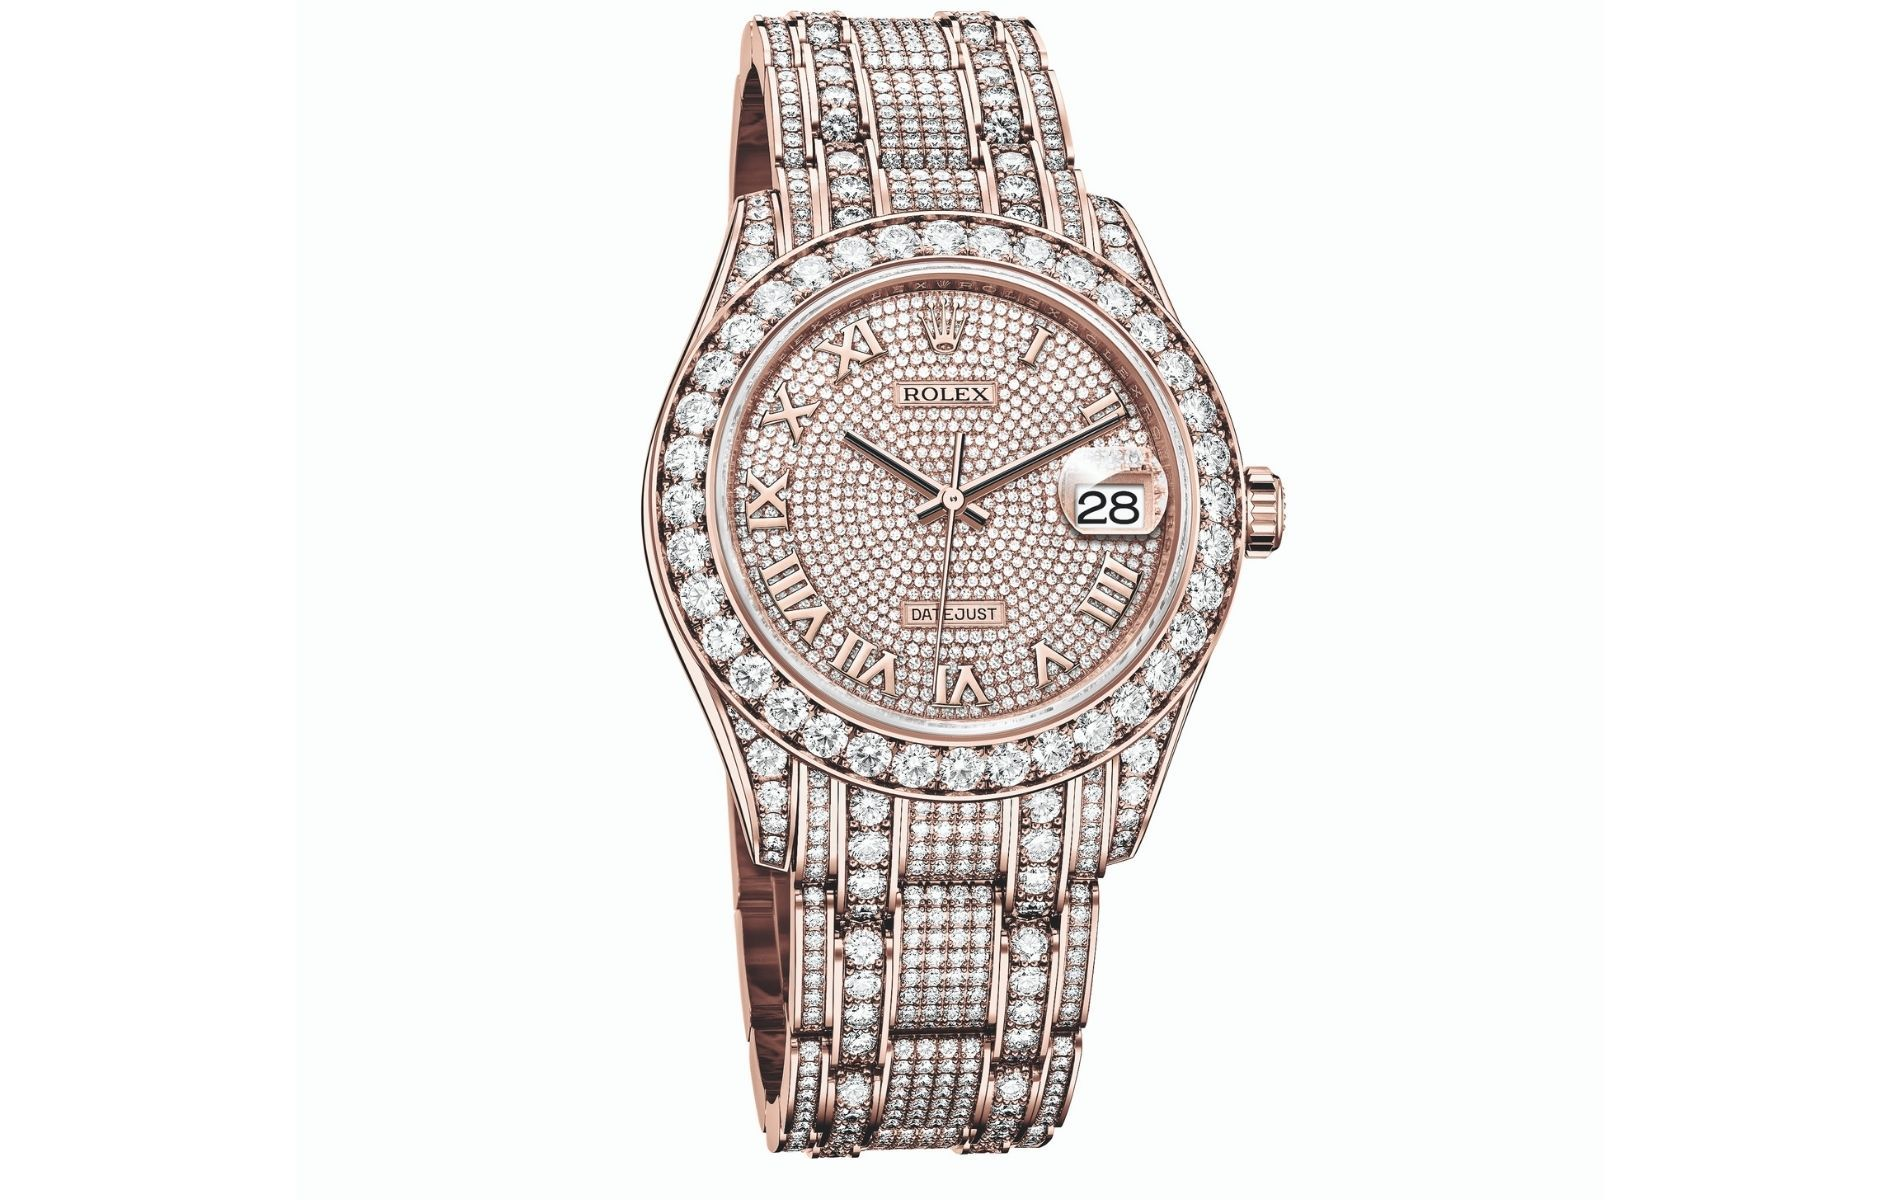 Rolex Oyster Perpetual Pearlmaster 39 in 18k Everose gold set with diamonds (Photo: Rolex)